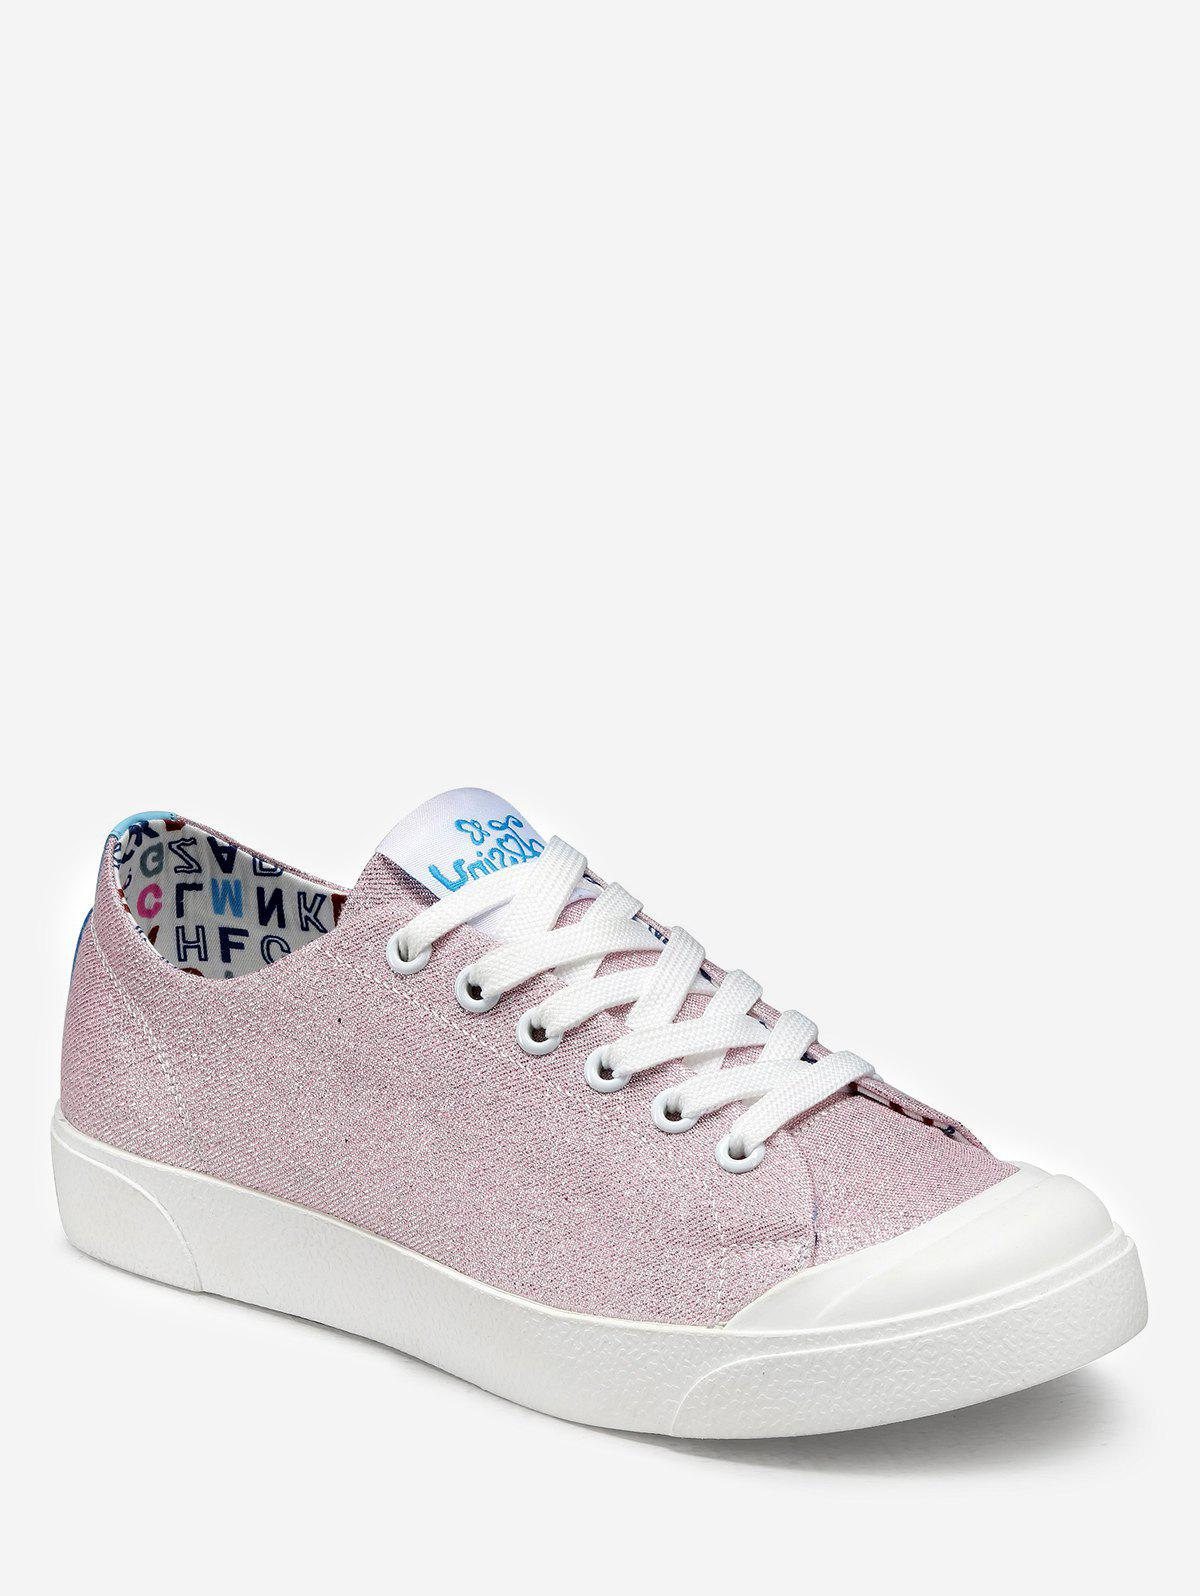 Shop Glitter Lace Up Leisure Sneakers